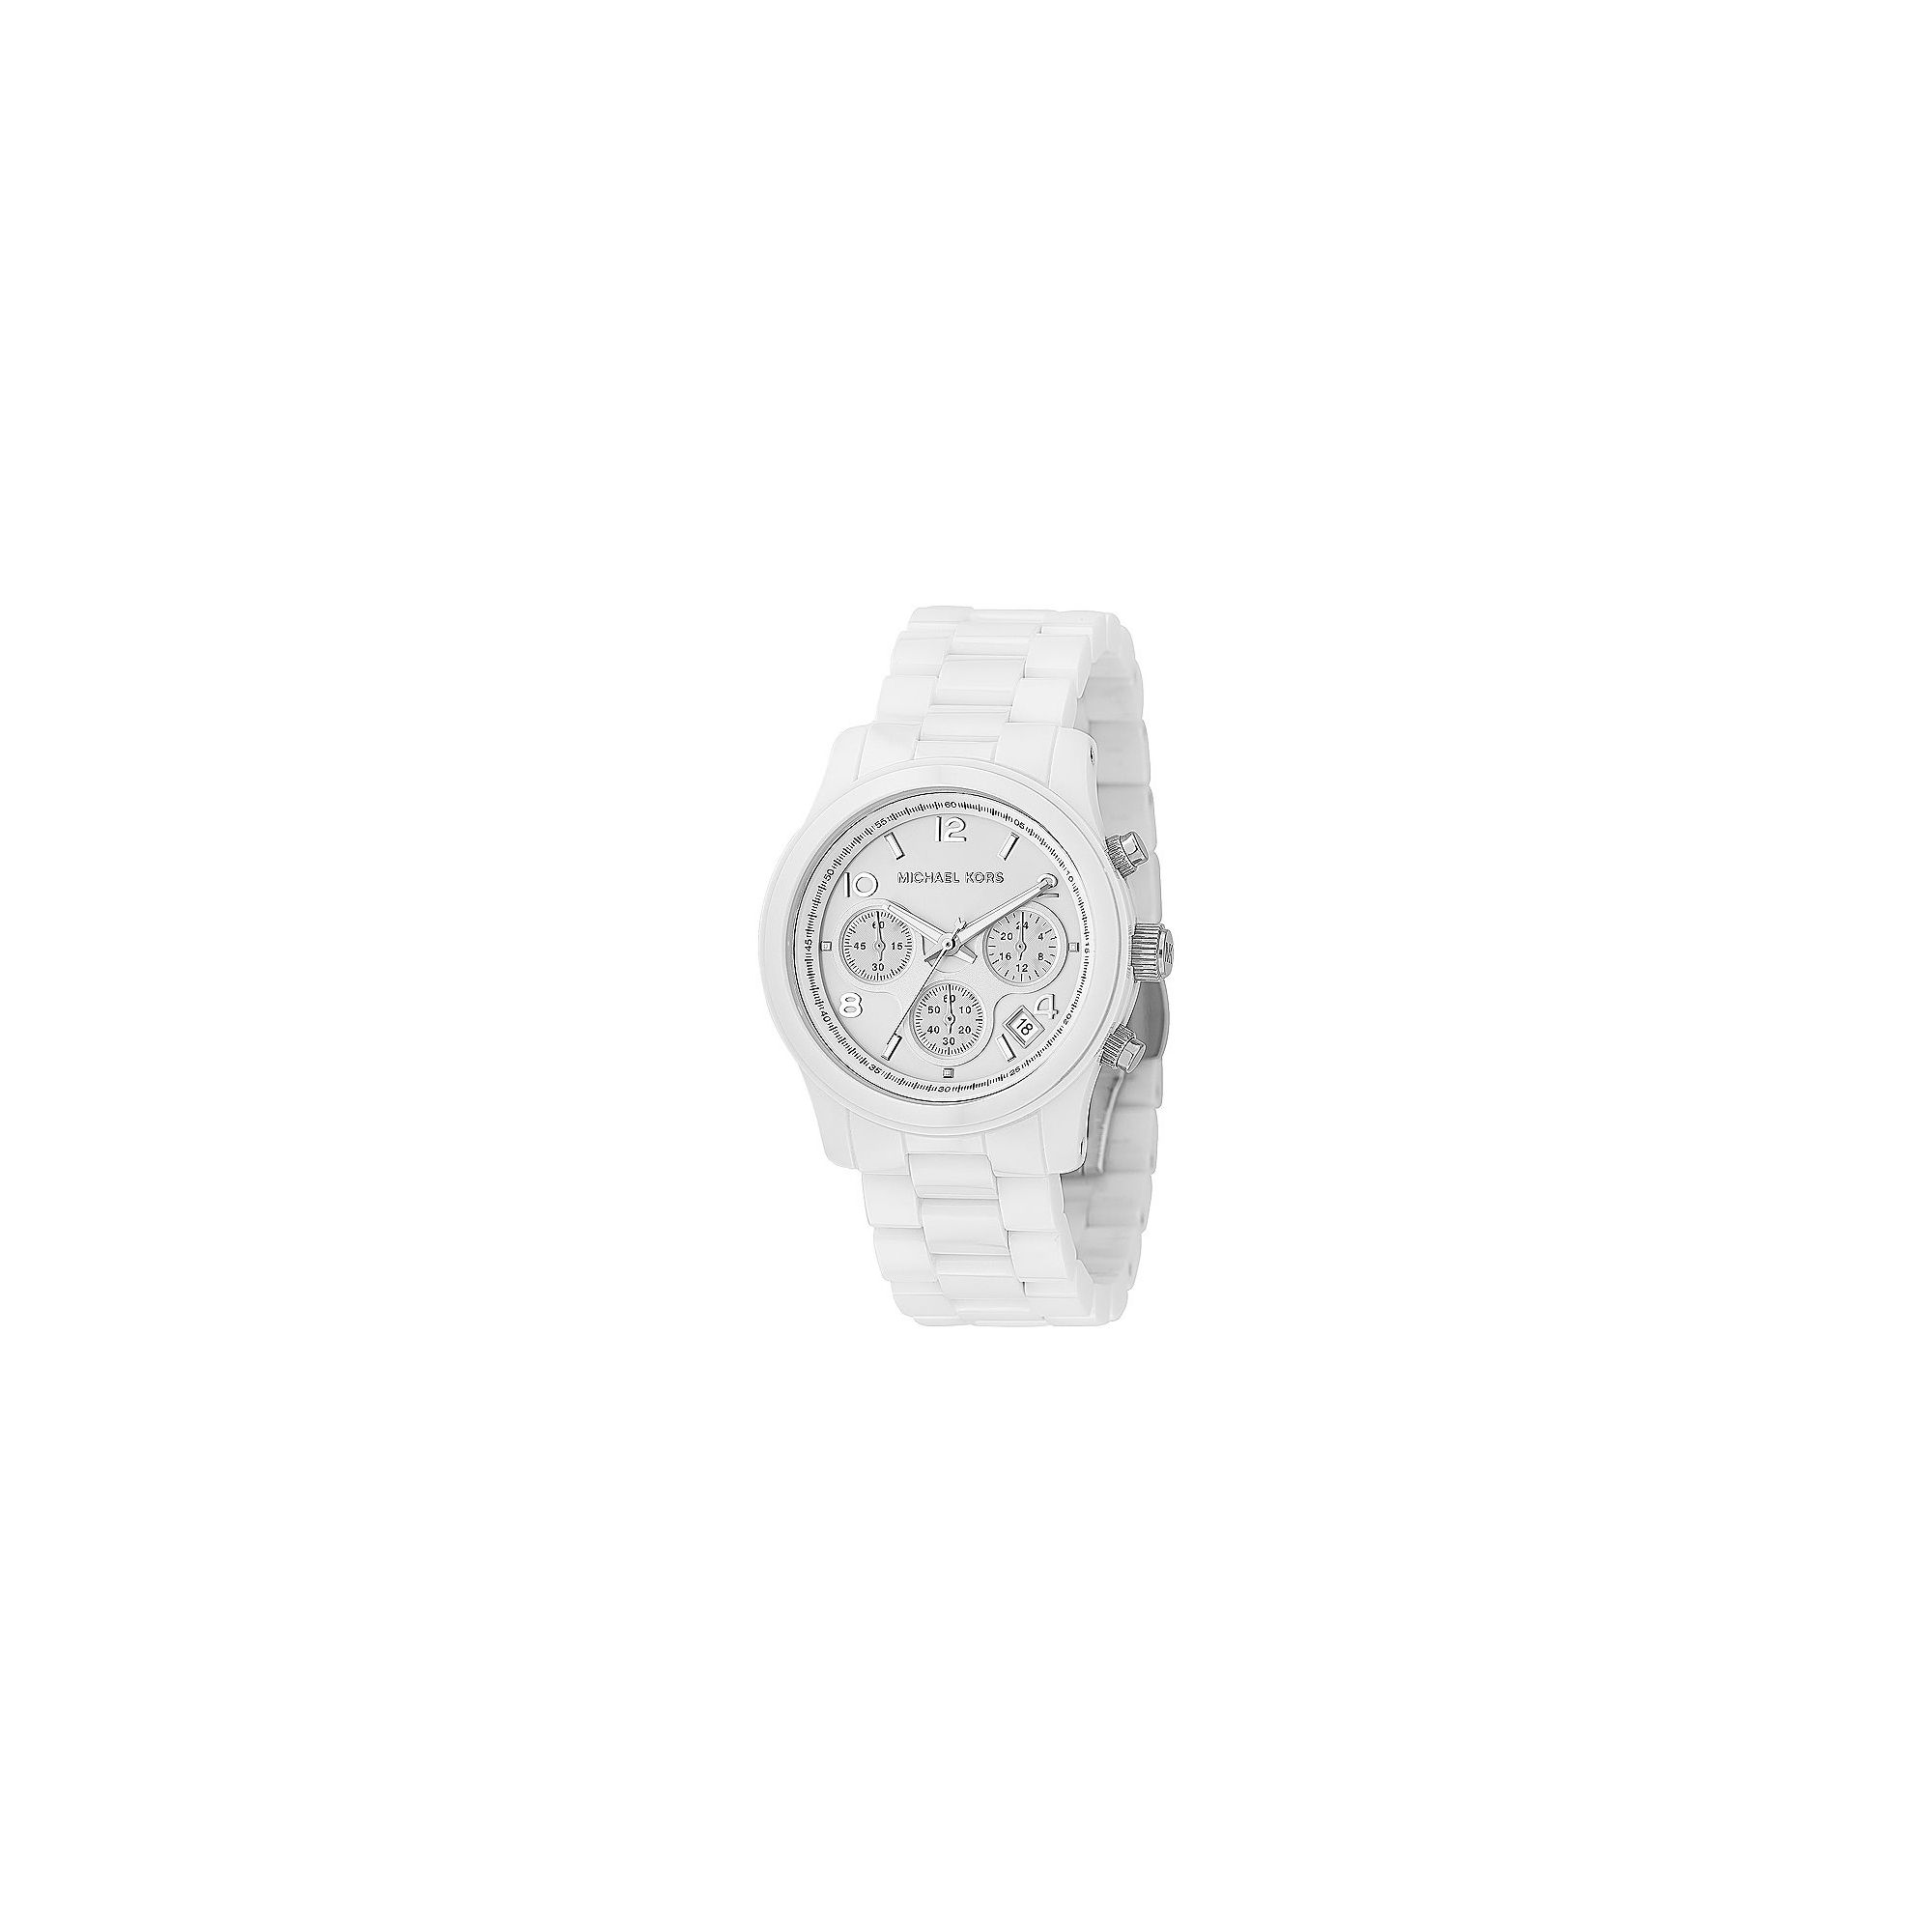 Michael Kors Ladies Ceramic Watch MK5161 at Tesco Direct